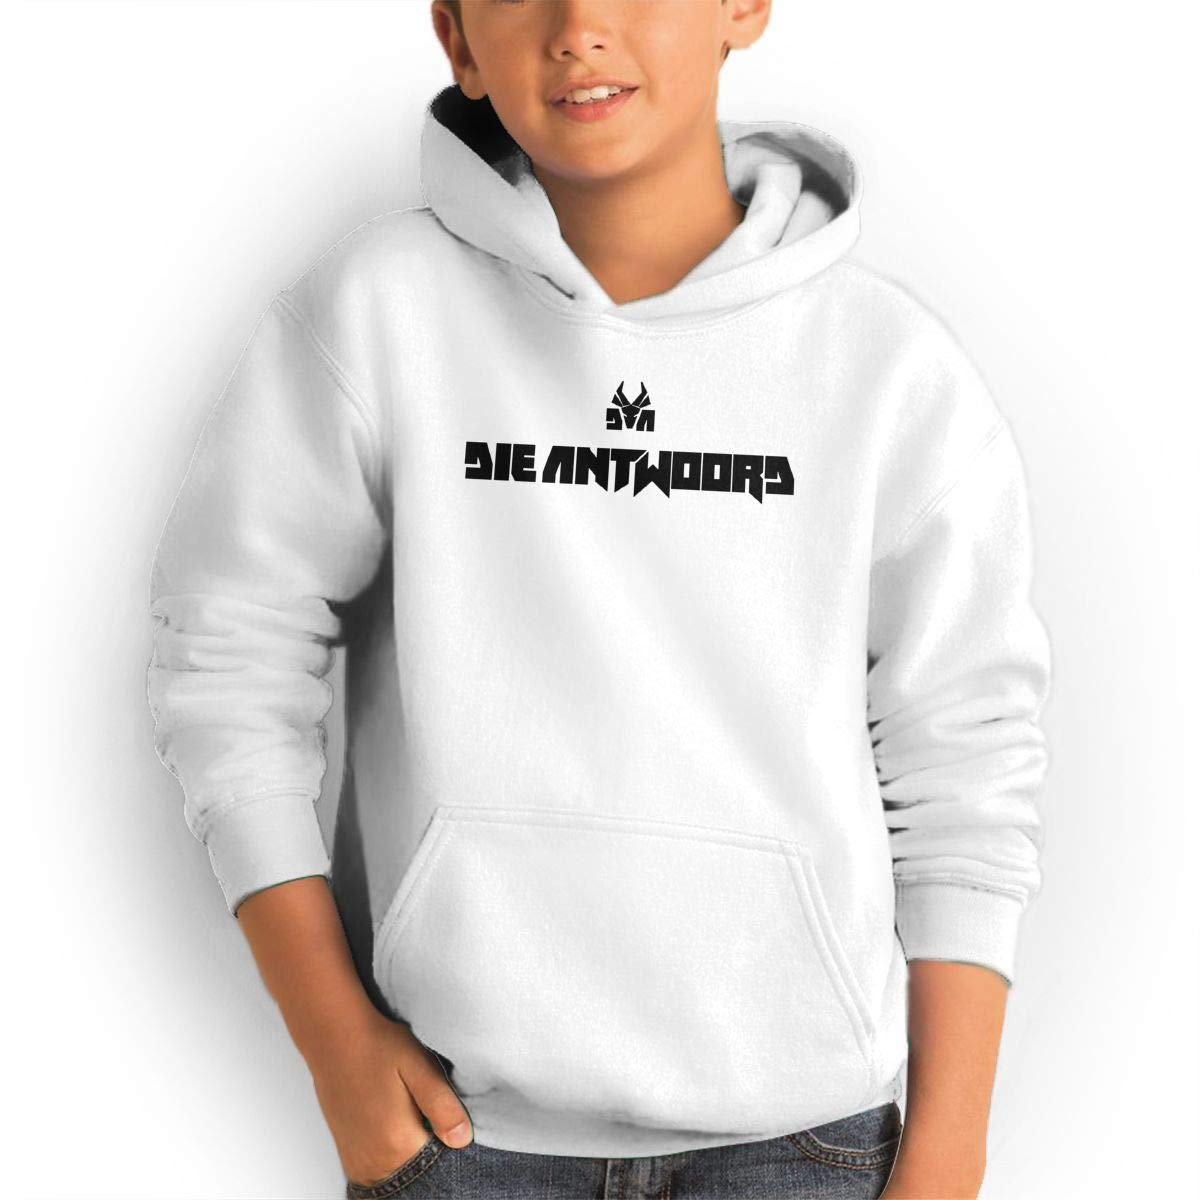 AlvinGuy Youth Boys and Girls Die Antwoord Pockets Jackets Sweatshirts Hoodies Hooded by AlvinGuy